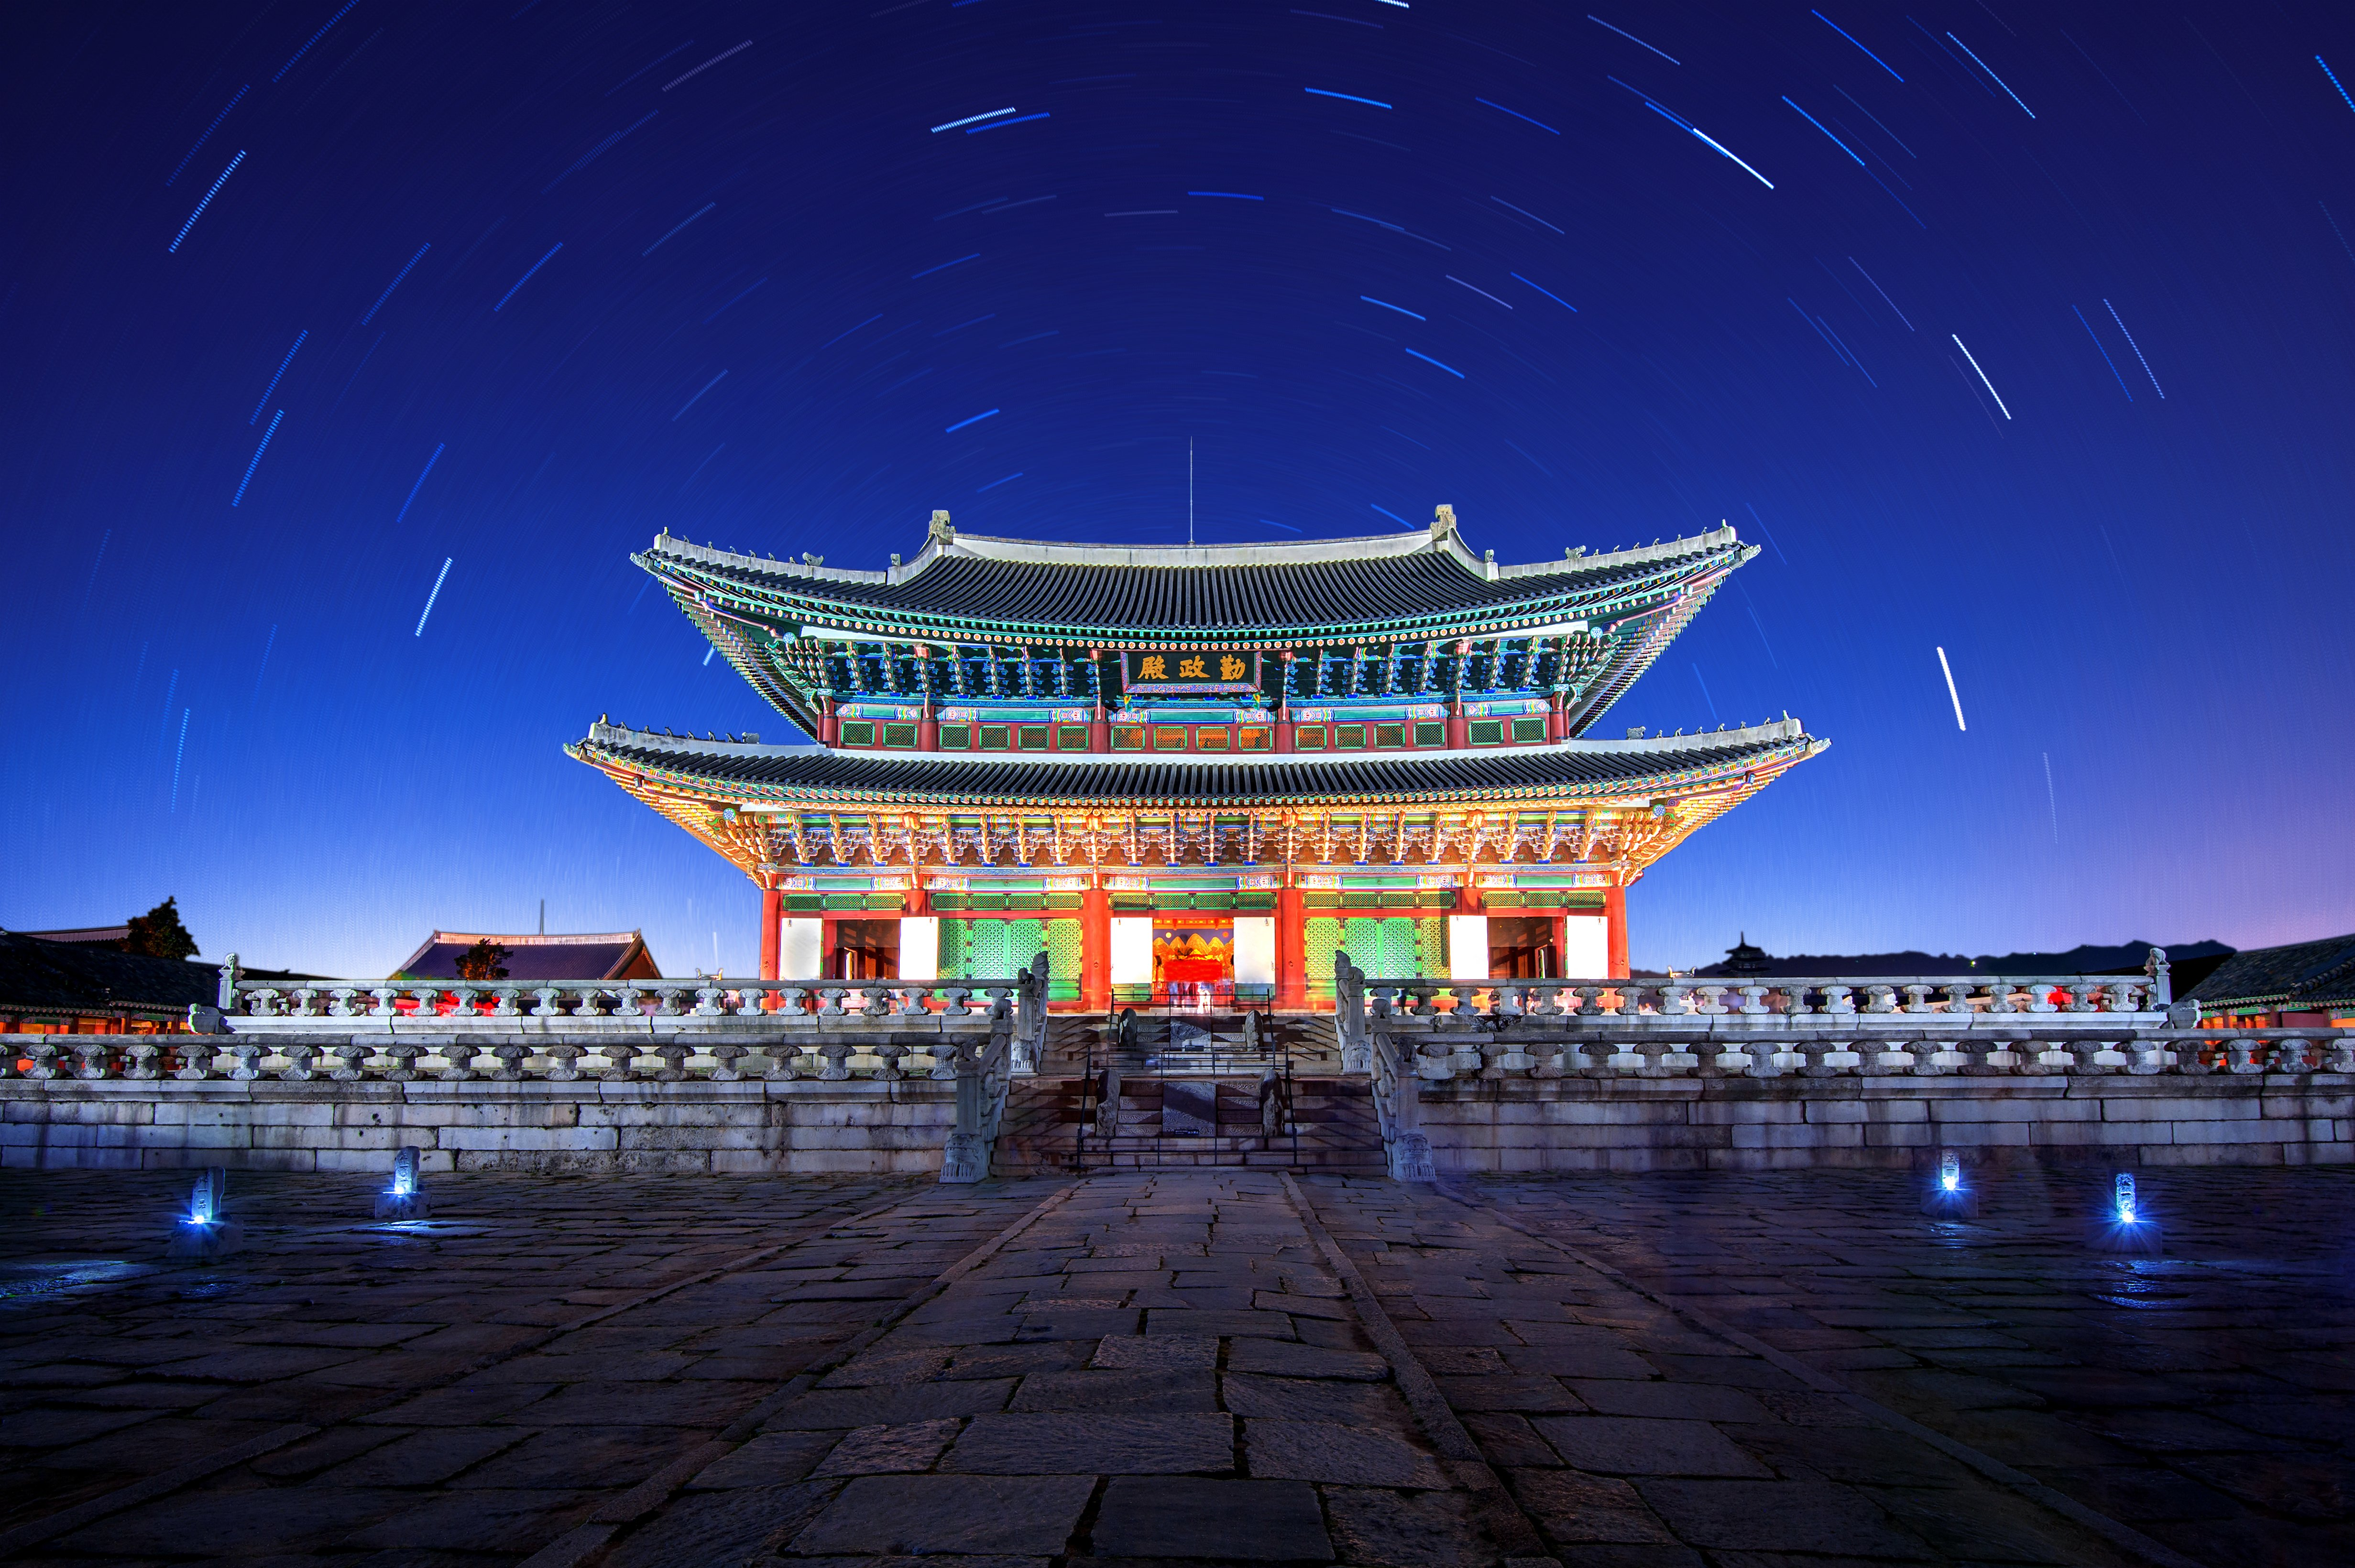 Gyeongbokgung Palace with Star trails at night in Seoul,Korea